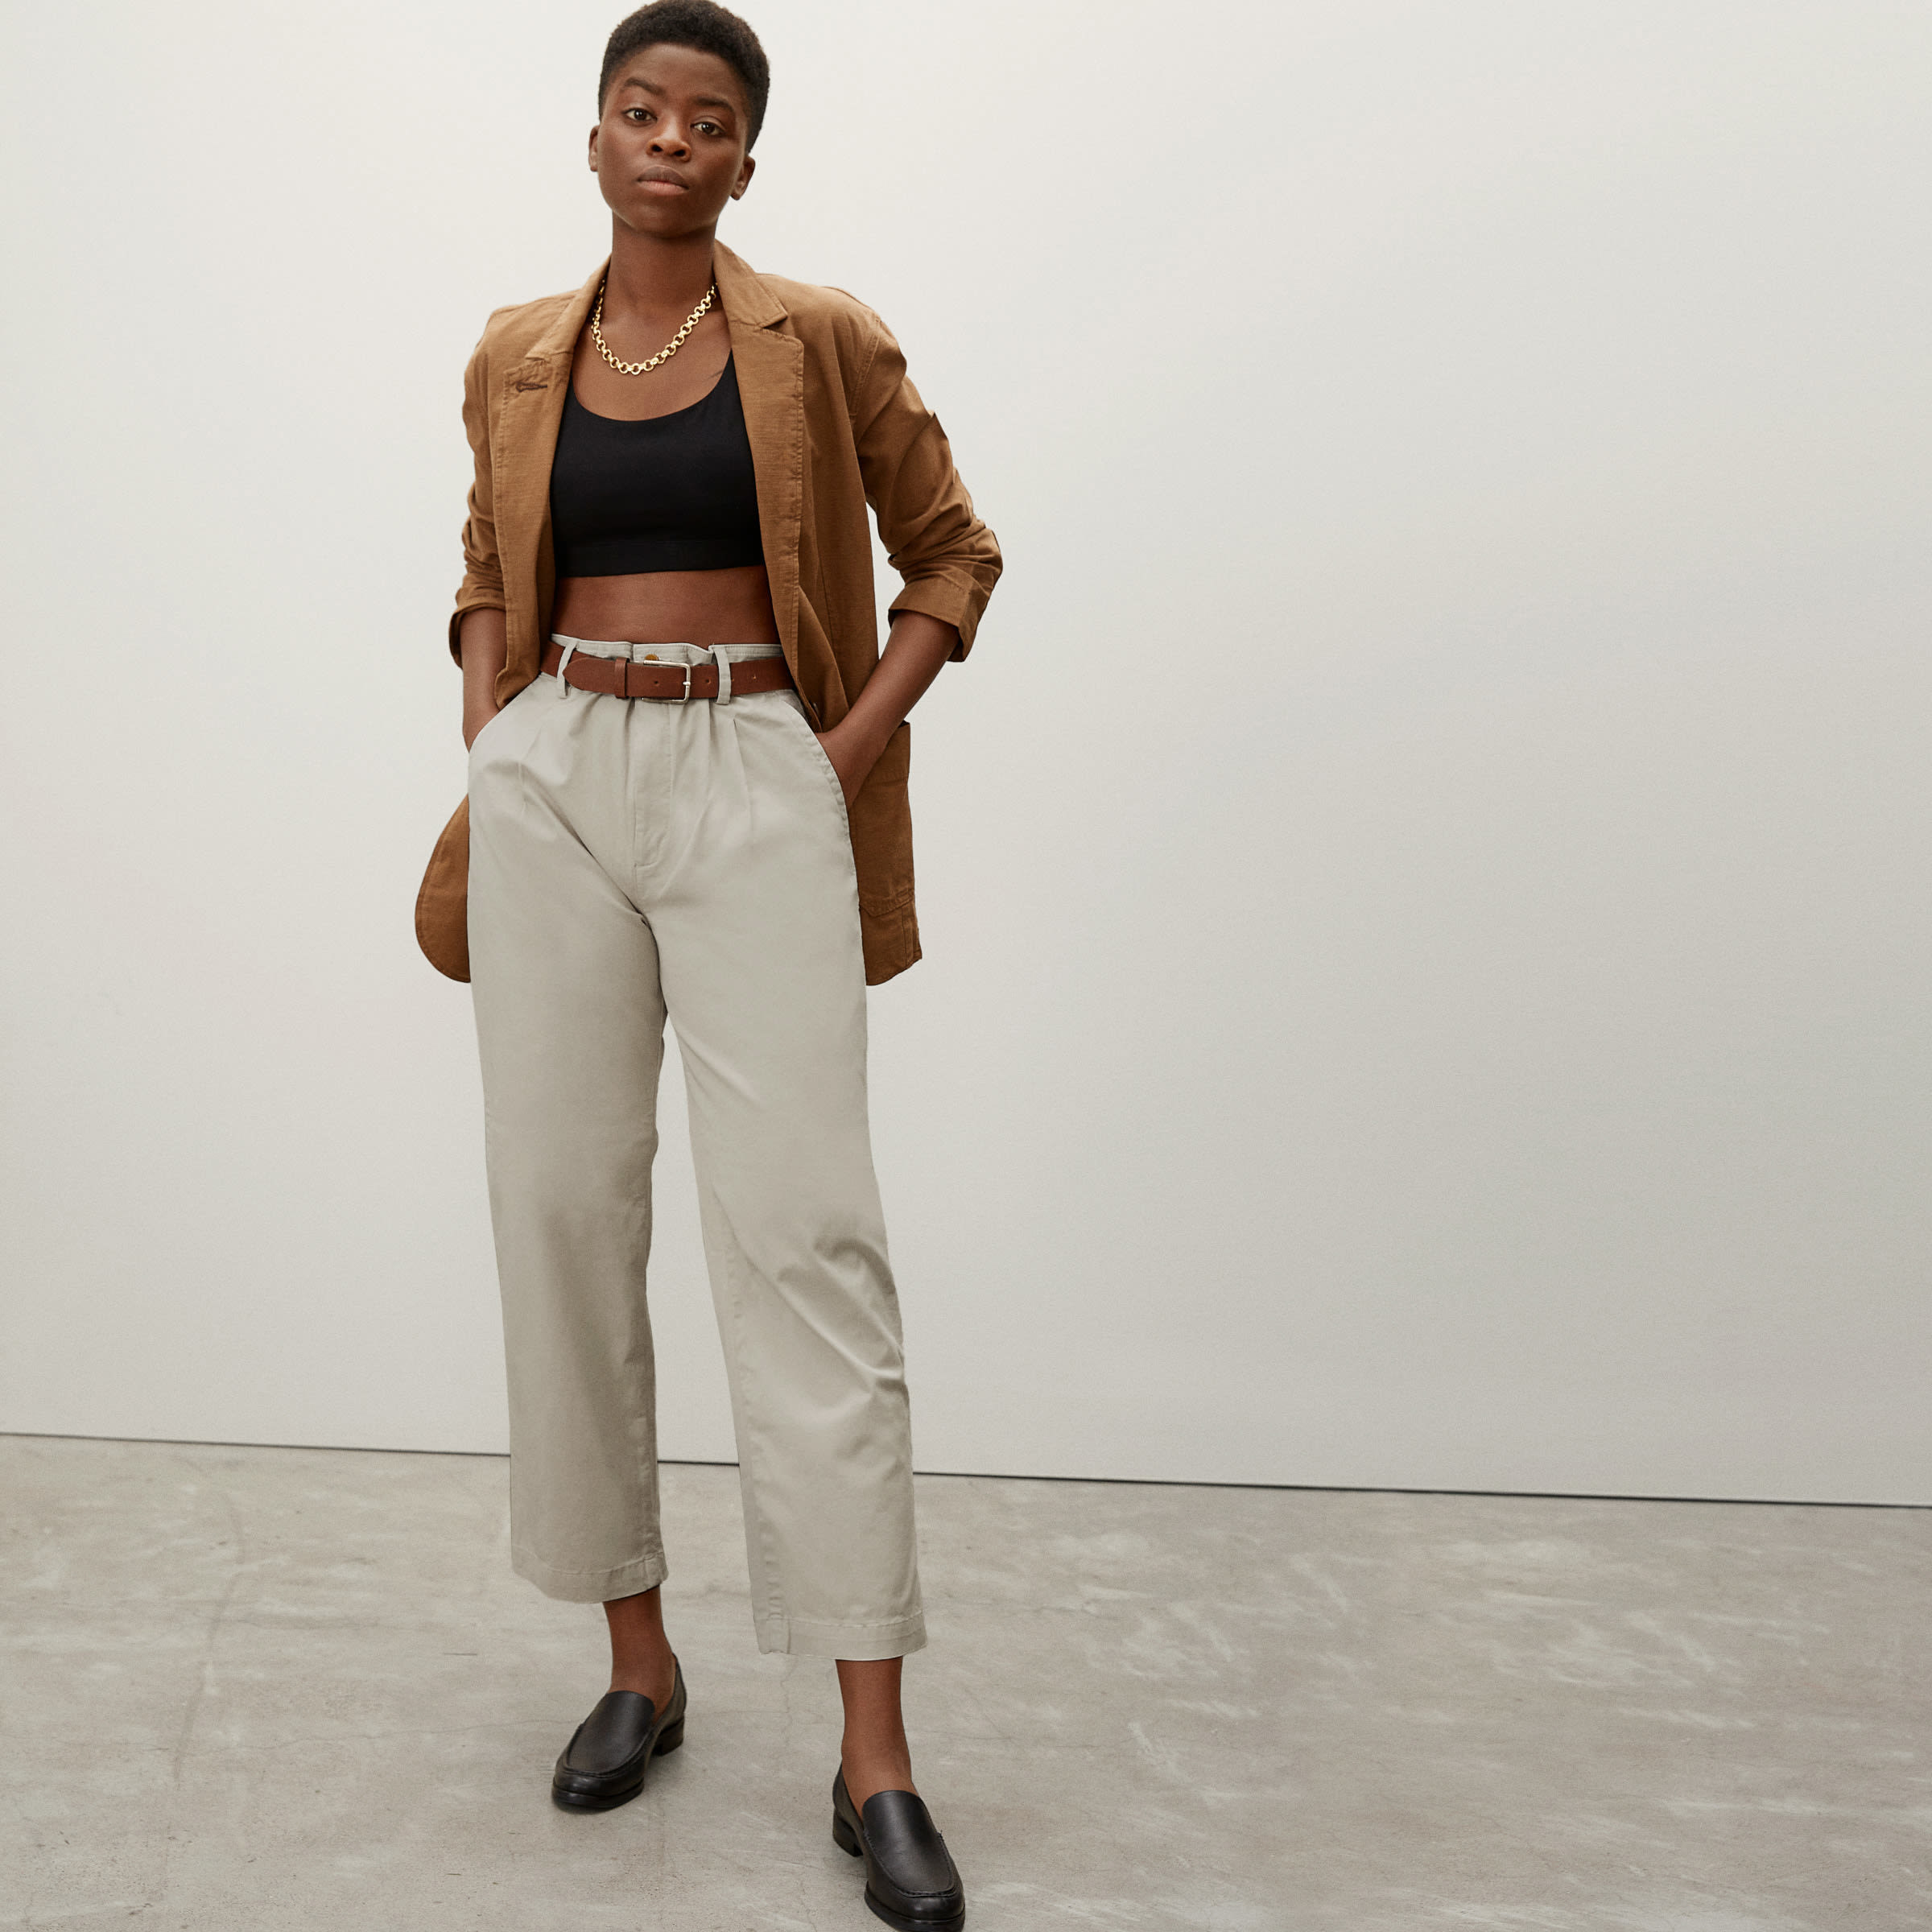 a model in tan chinos